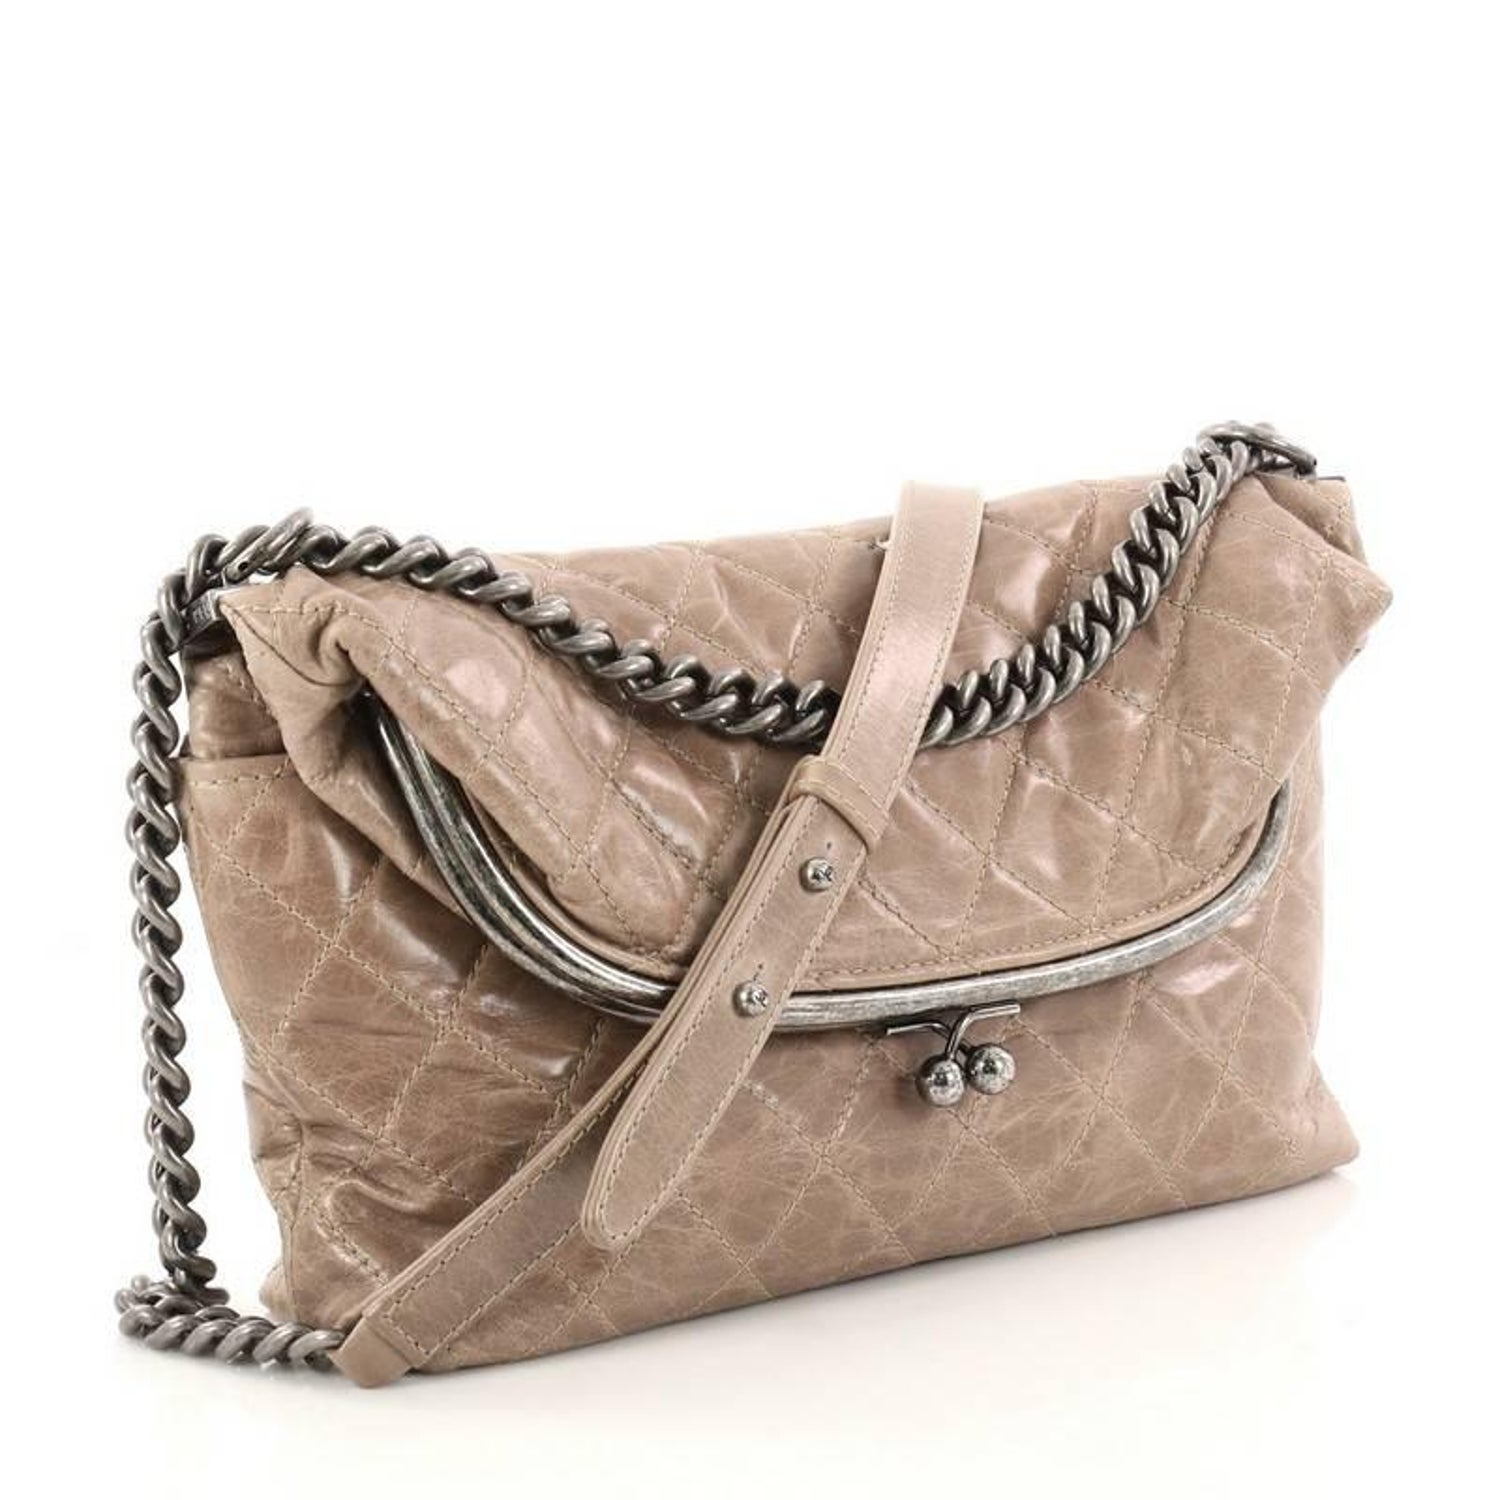 a51c66661ce4 Chanel Tabatiere Kisslock Quilted Aged Calfskin Large Fold Over Bag at  1stdibs